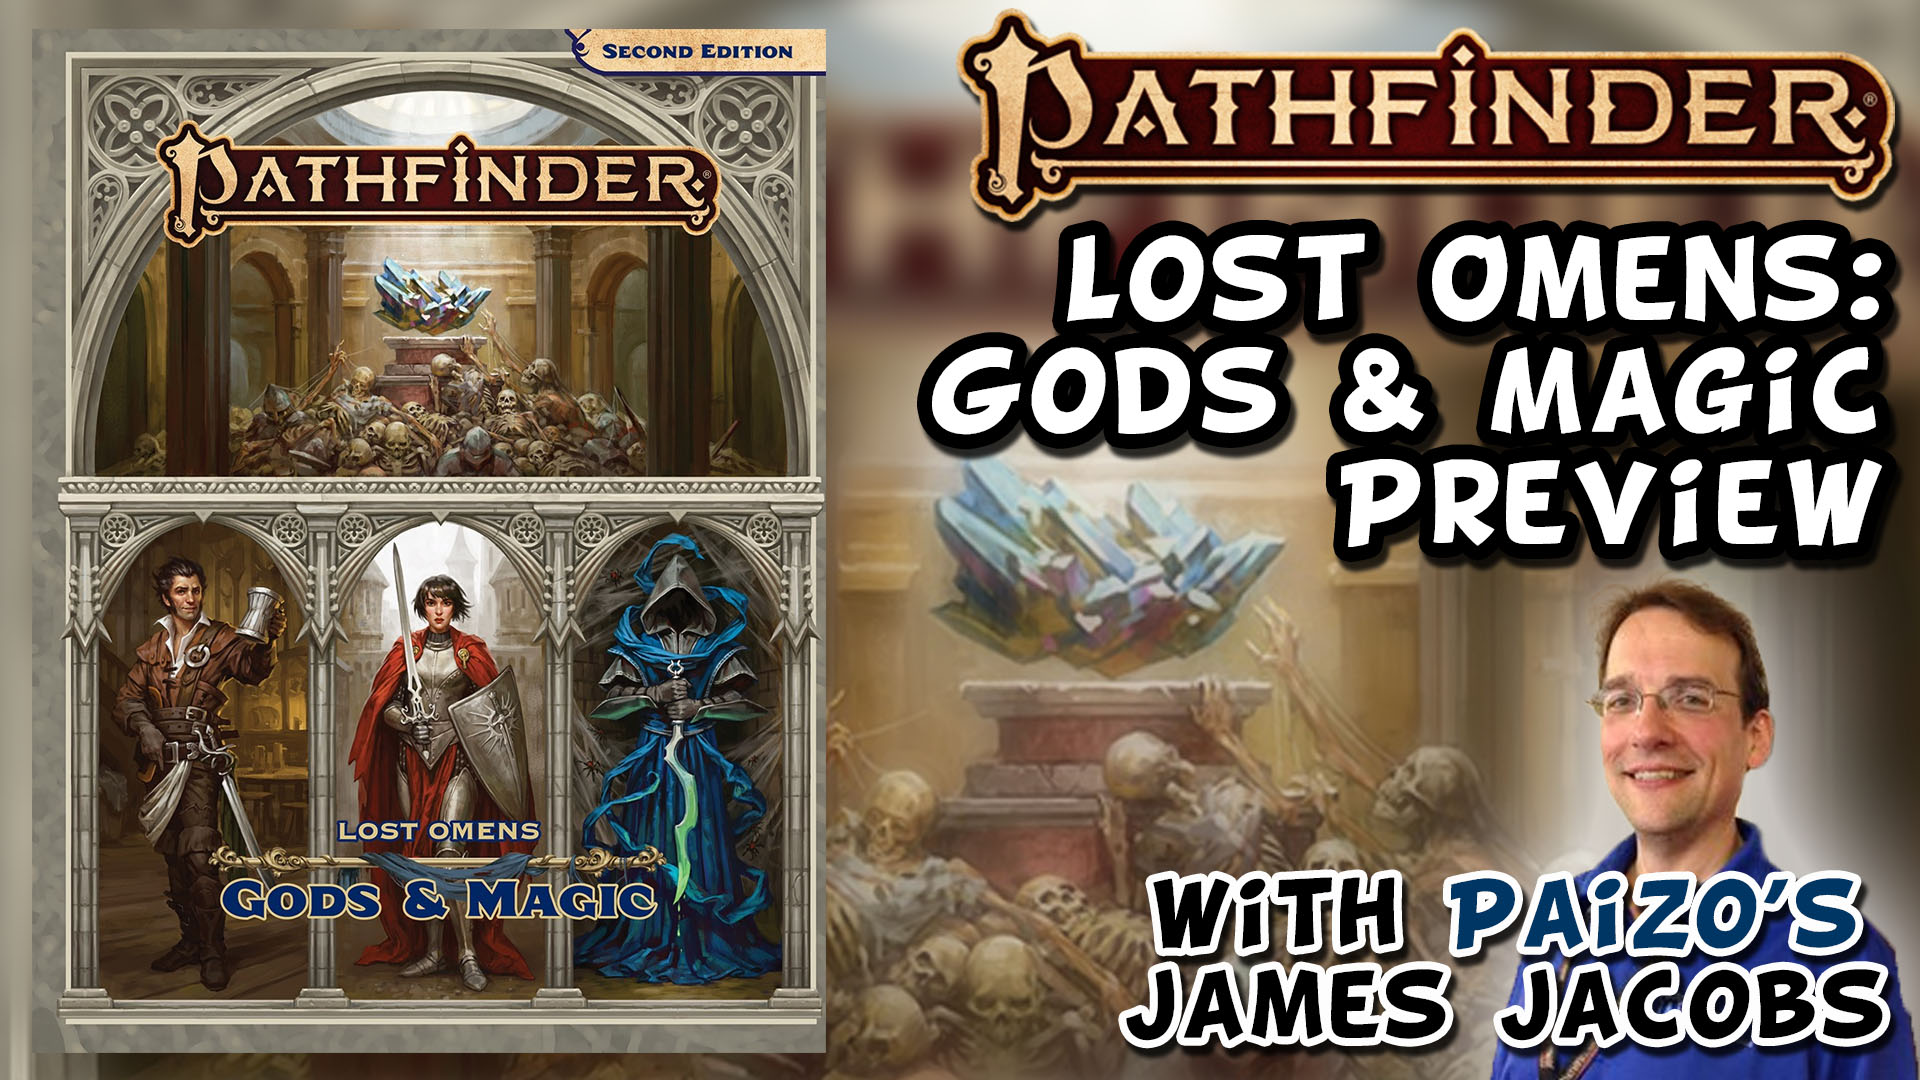 Pathfinder Lost Omens: Gods and MAgic Preview with Paizo's James Jacobs